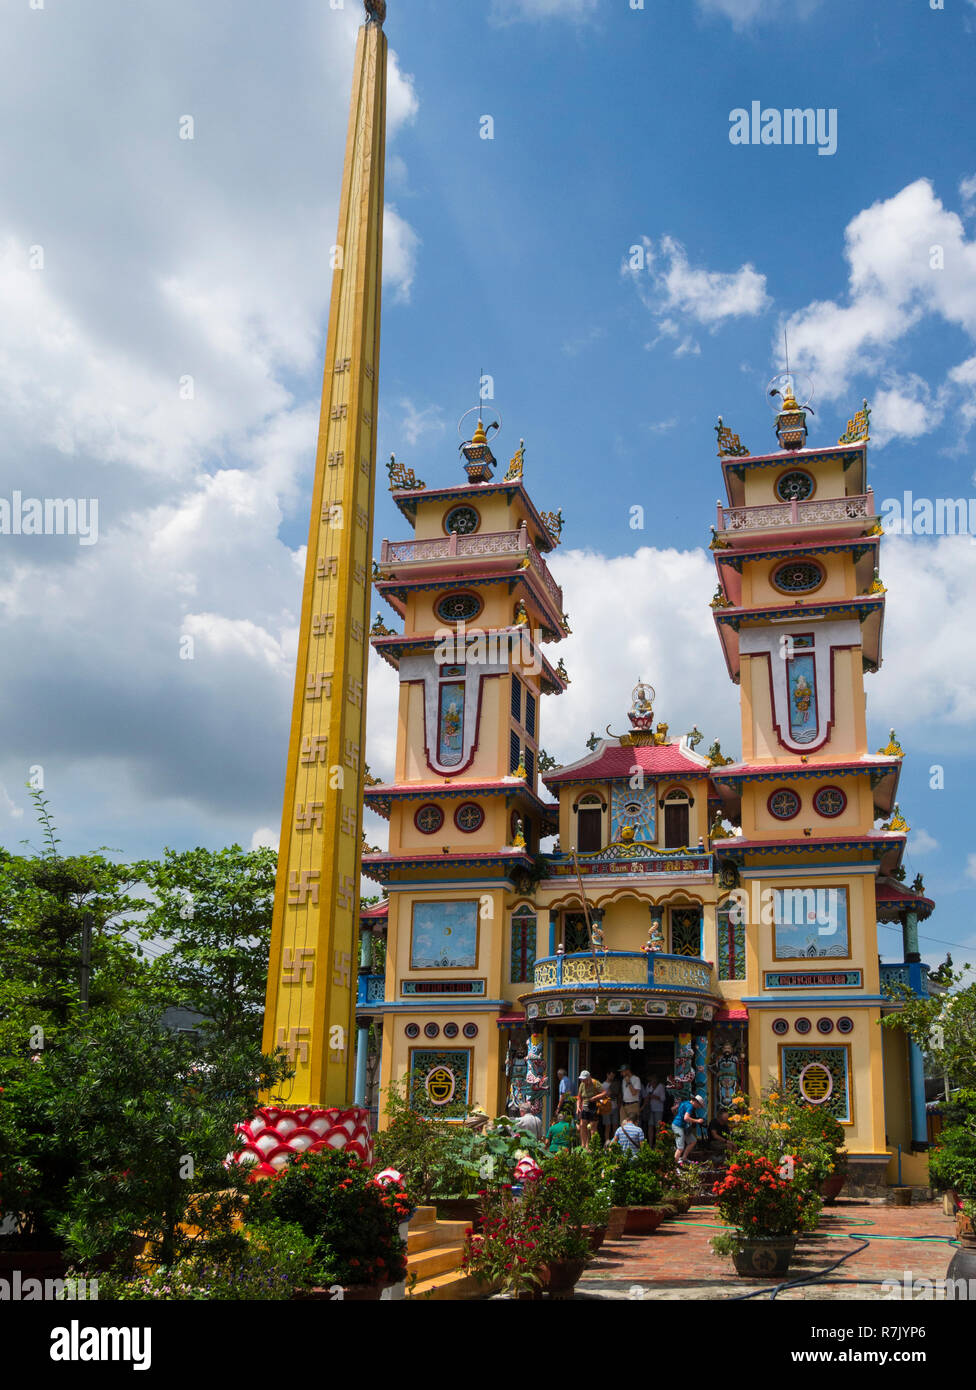 Cao Dai Temple in Cai Be symbolises local unique religion indigenous to Vietnam very ornate temple Vietnam Asia - Stock Image